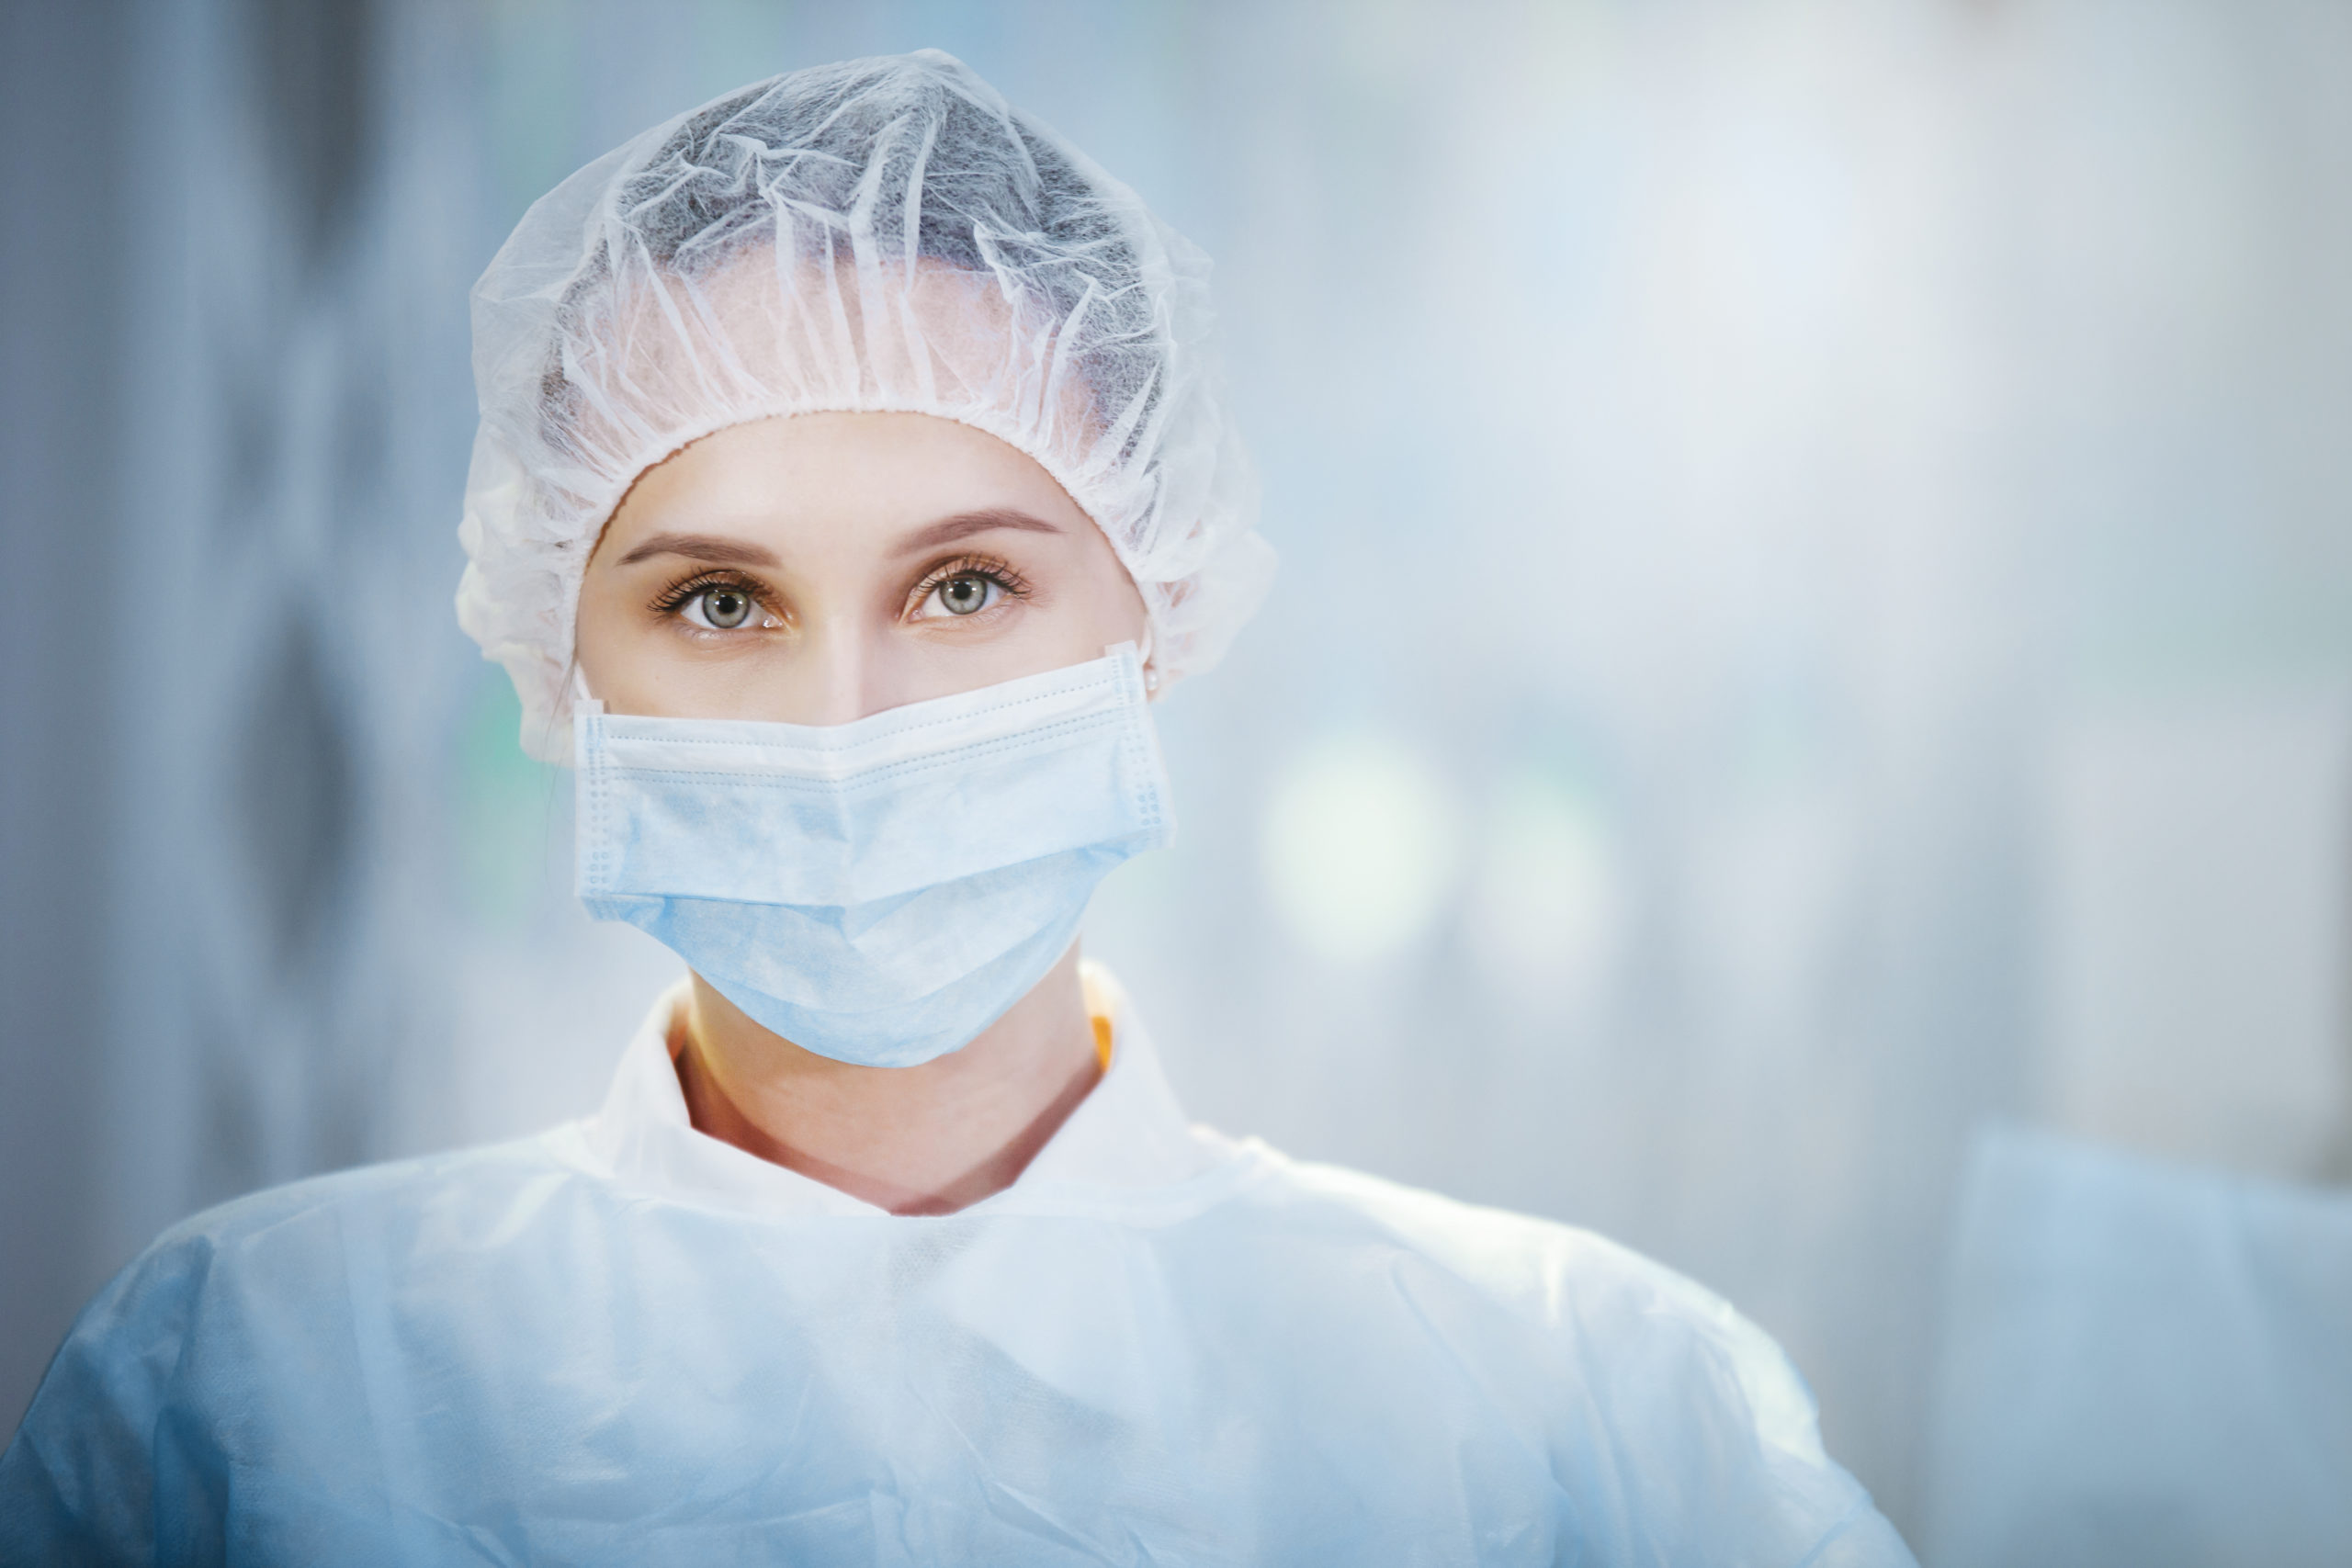 Surgical Nurse in cap and mask in medical clinic. Close-up portrait. Health care, surgery.